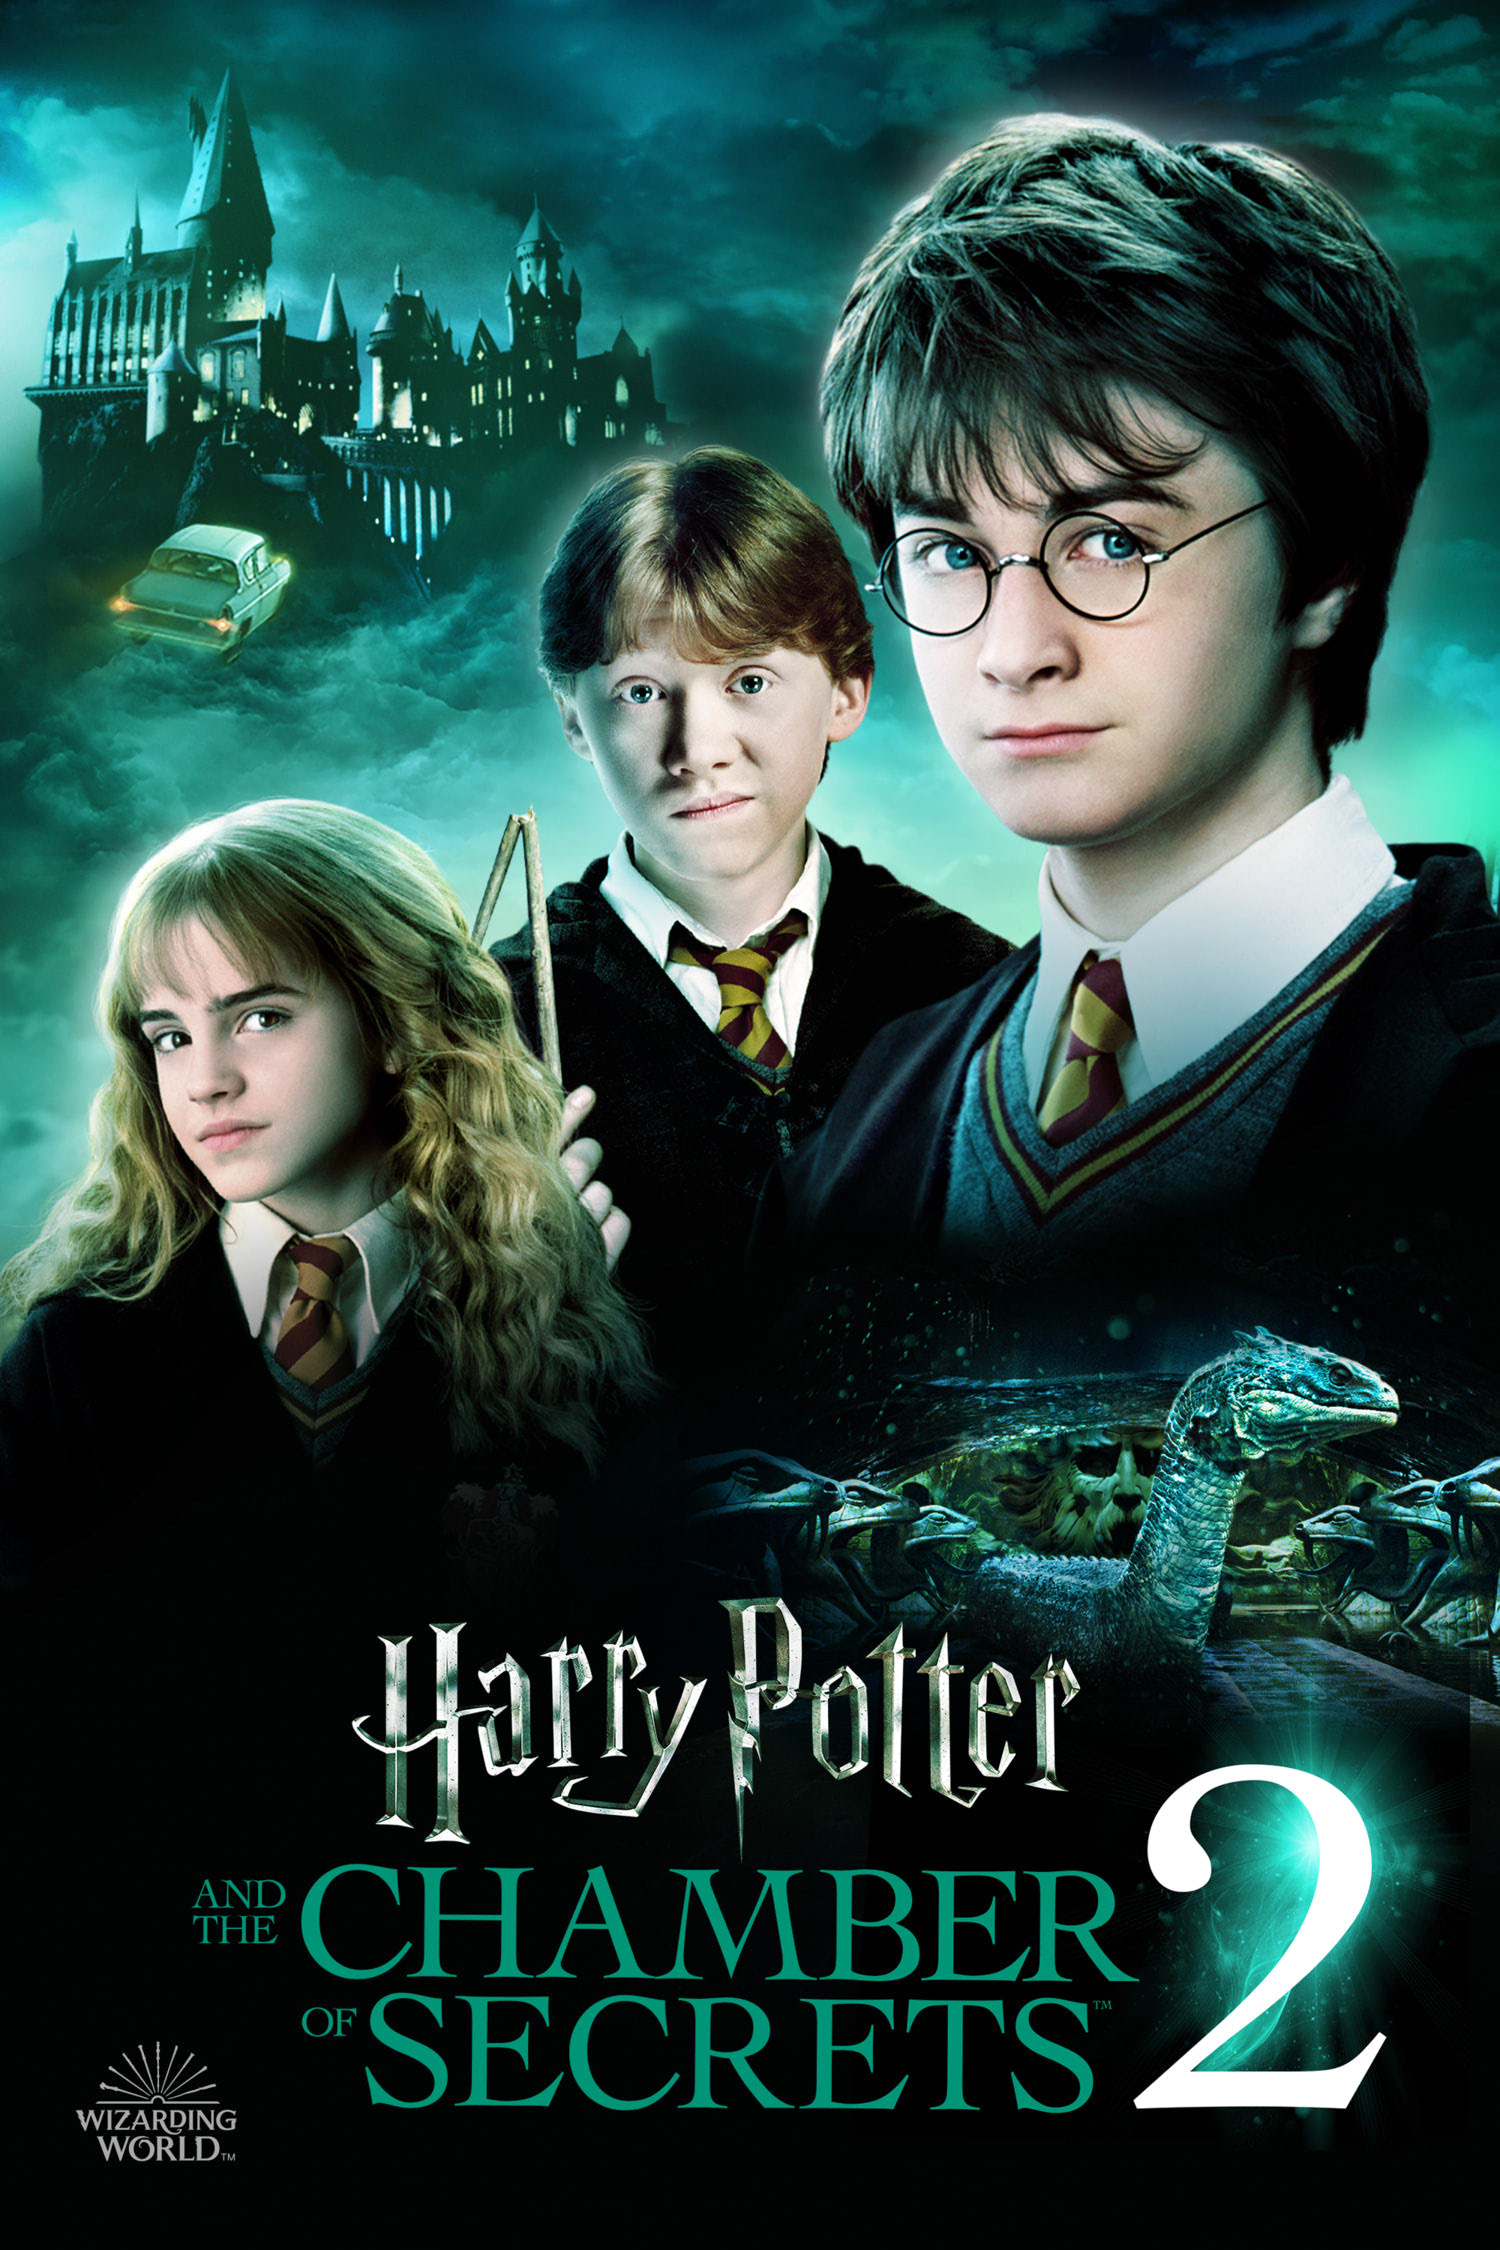 'Chamber of Secrets' Wizarding World poster